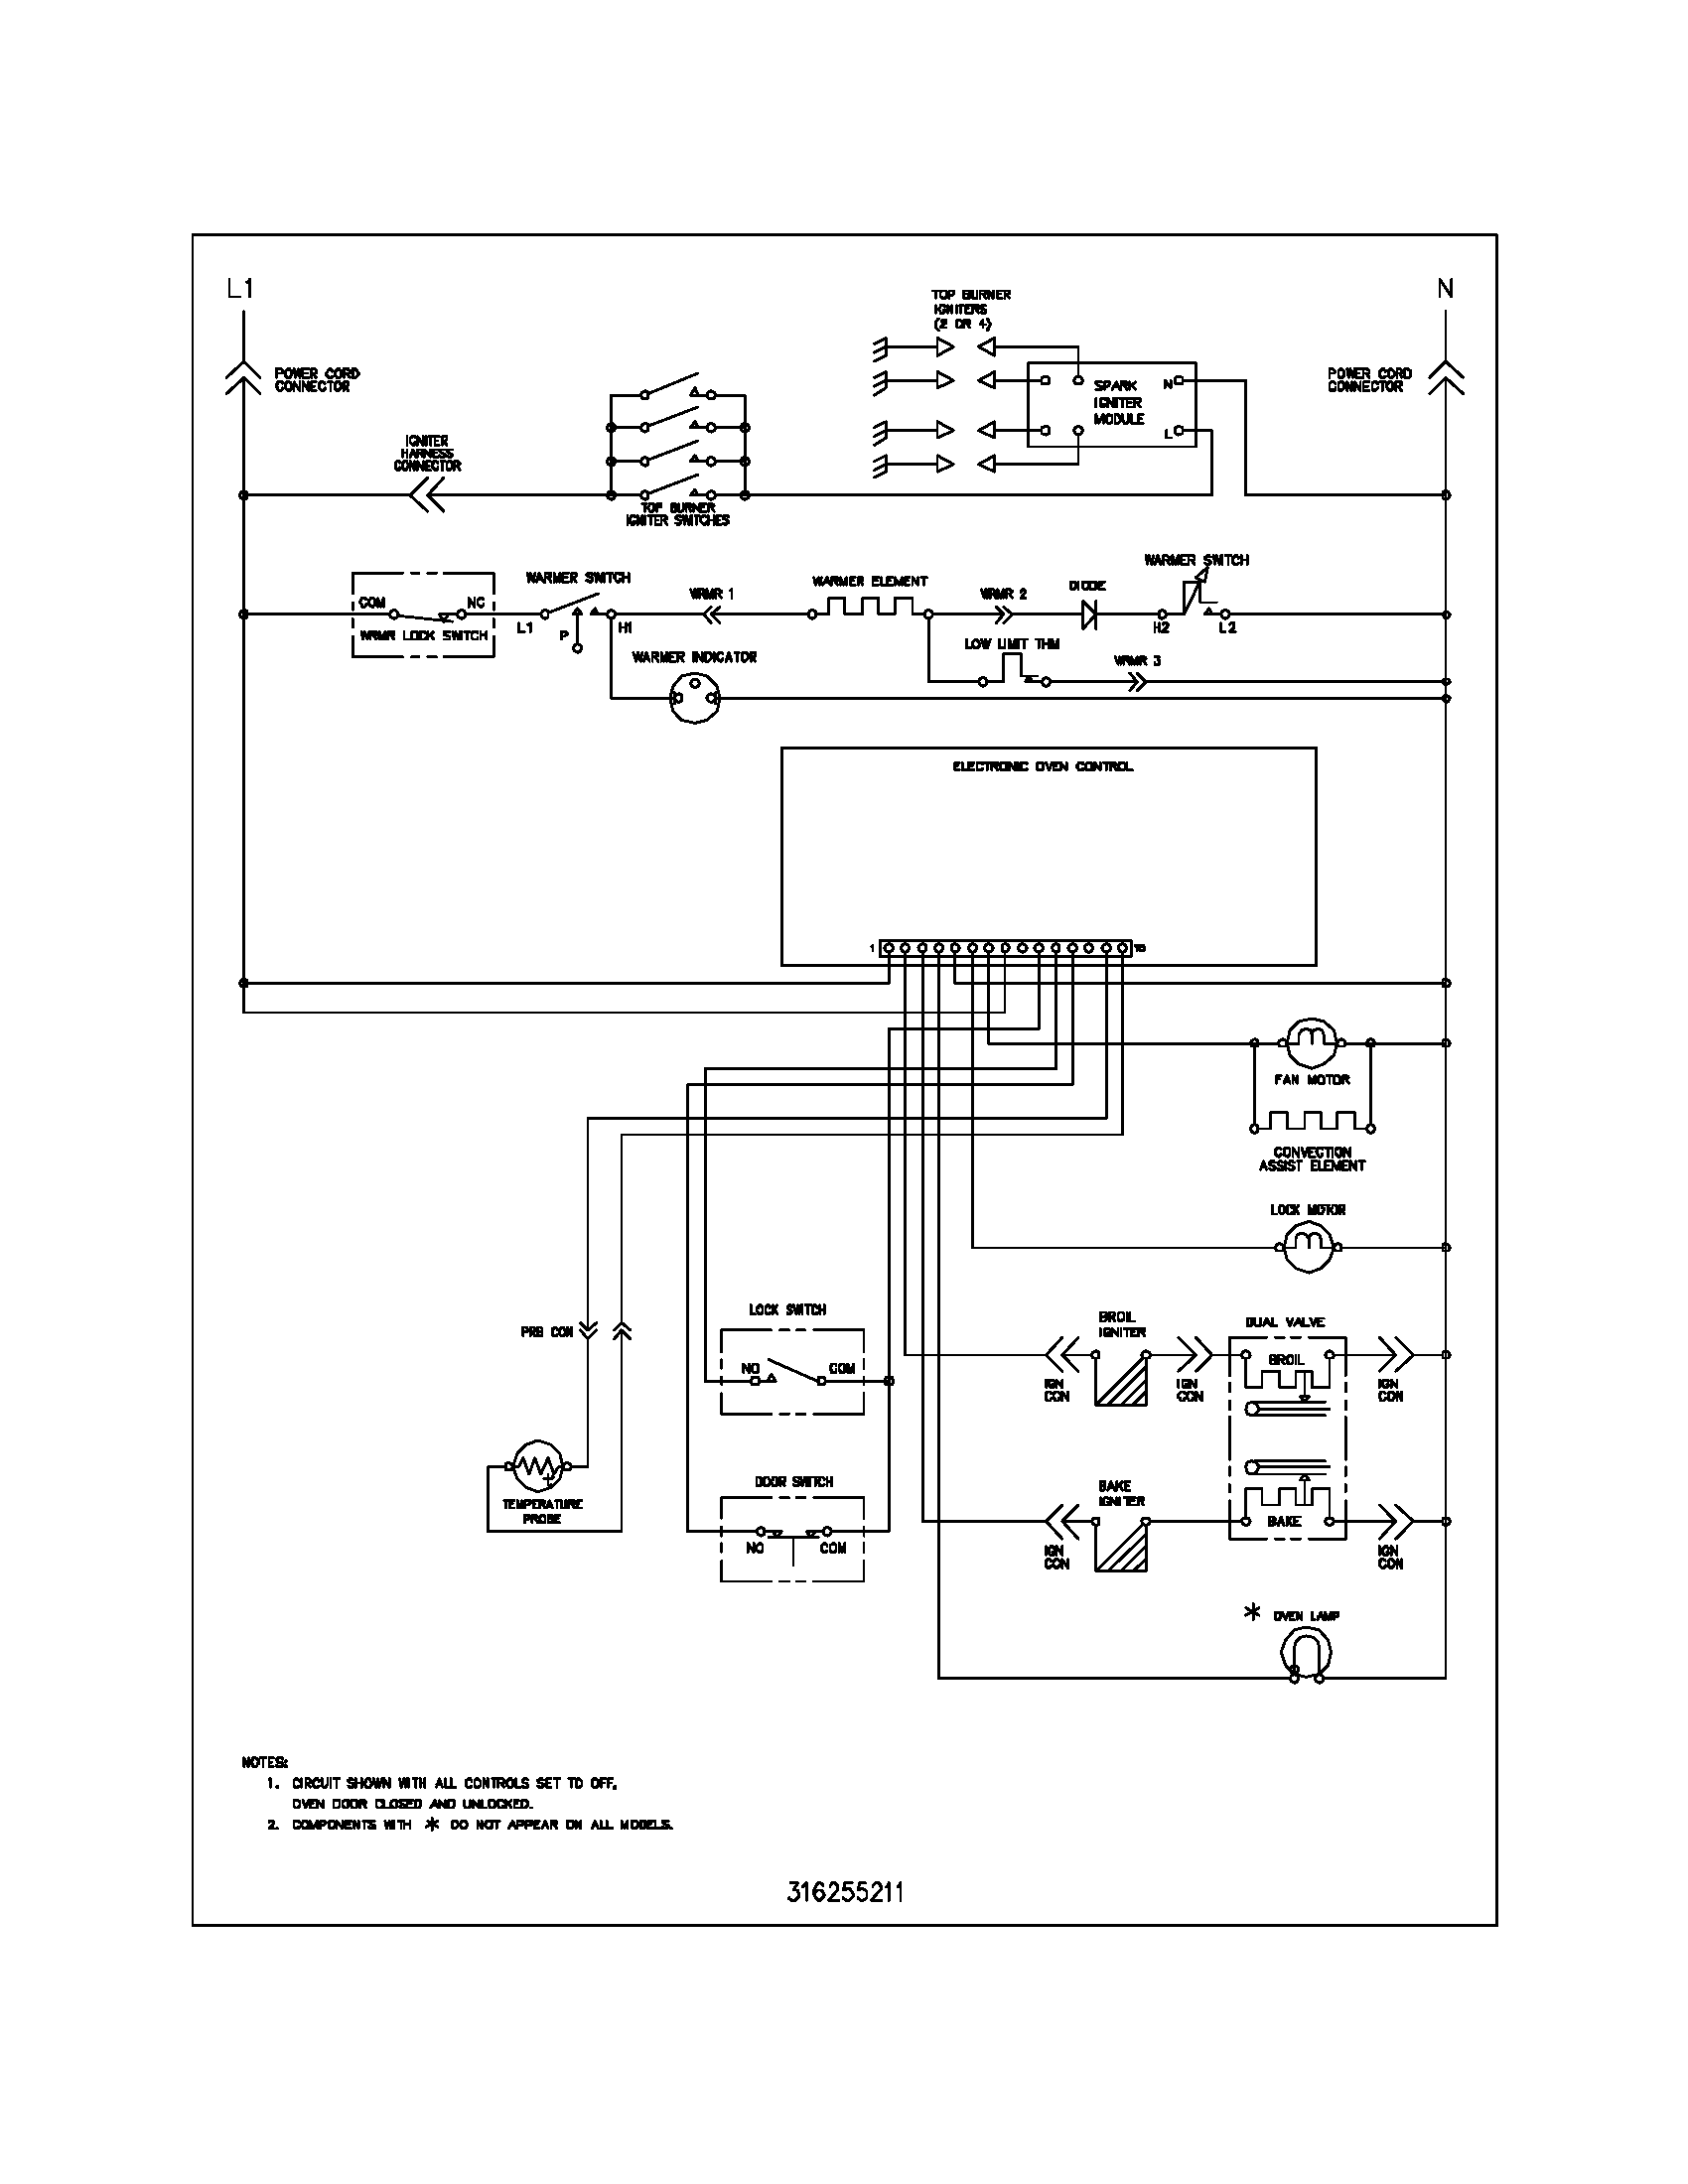 Wiring Diagram Electric Furnace Burners Reinvent Your Old Refrigerator Gas Burner Schematic Schematics Rh Mychampagnedaze Com Basic Sequencer